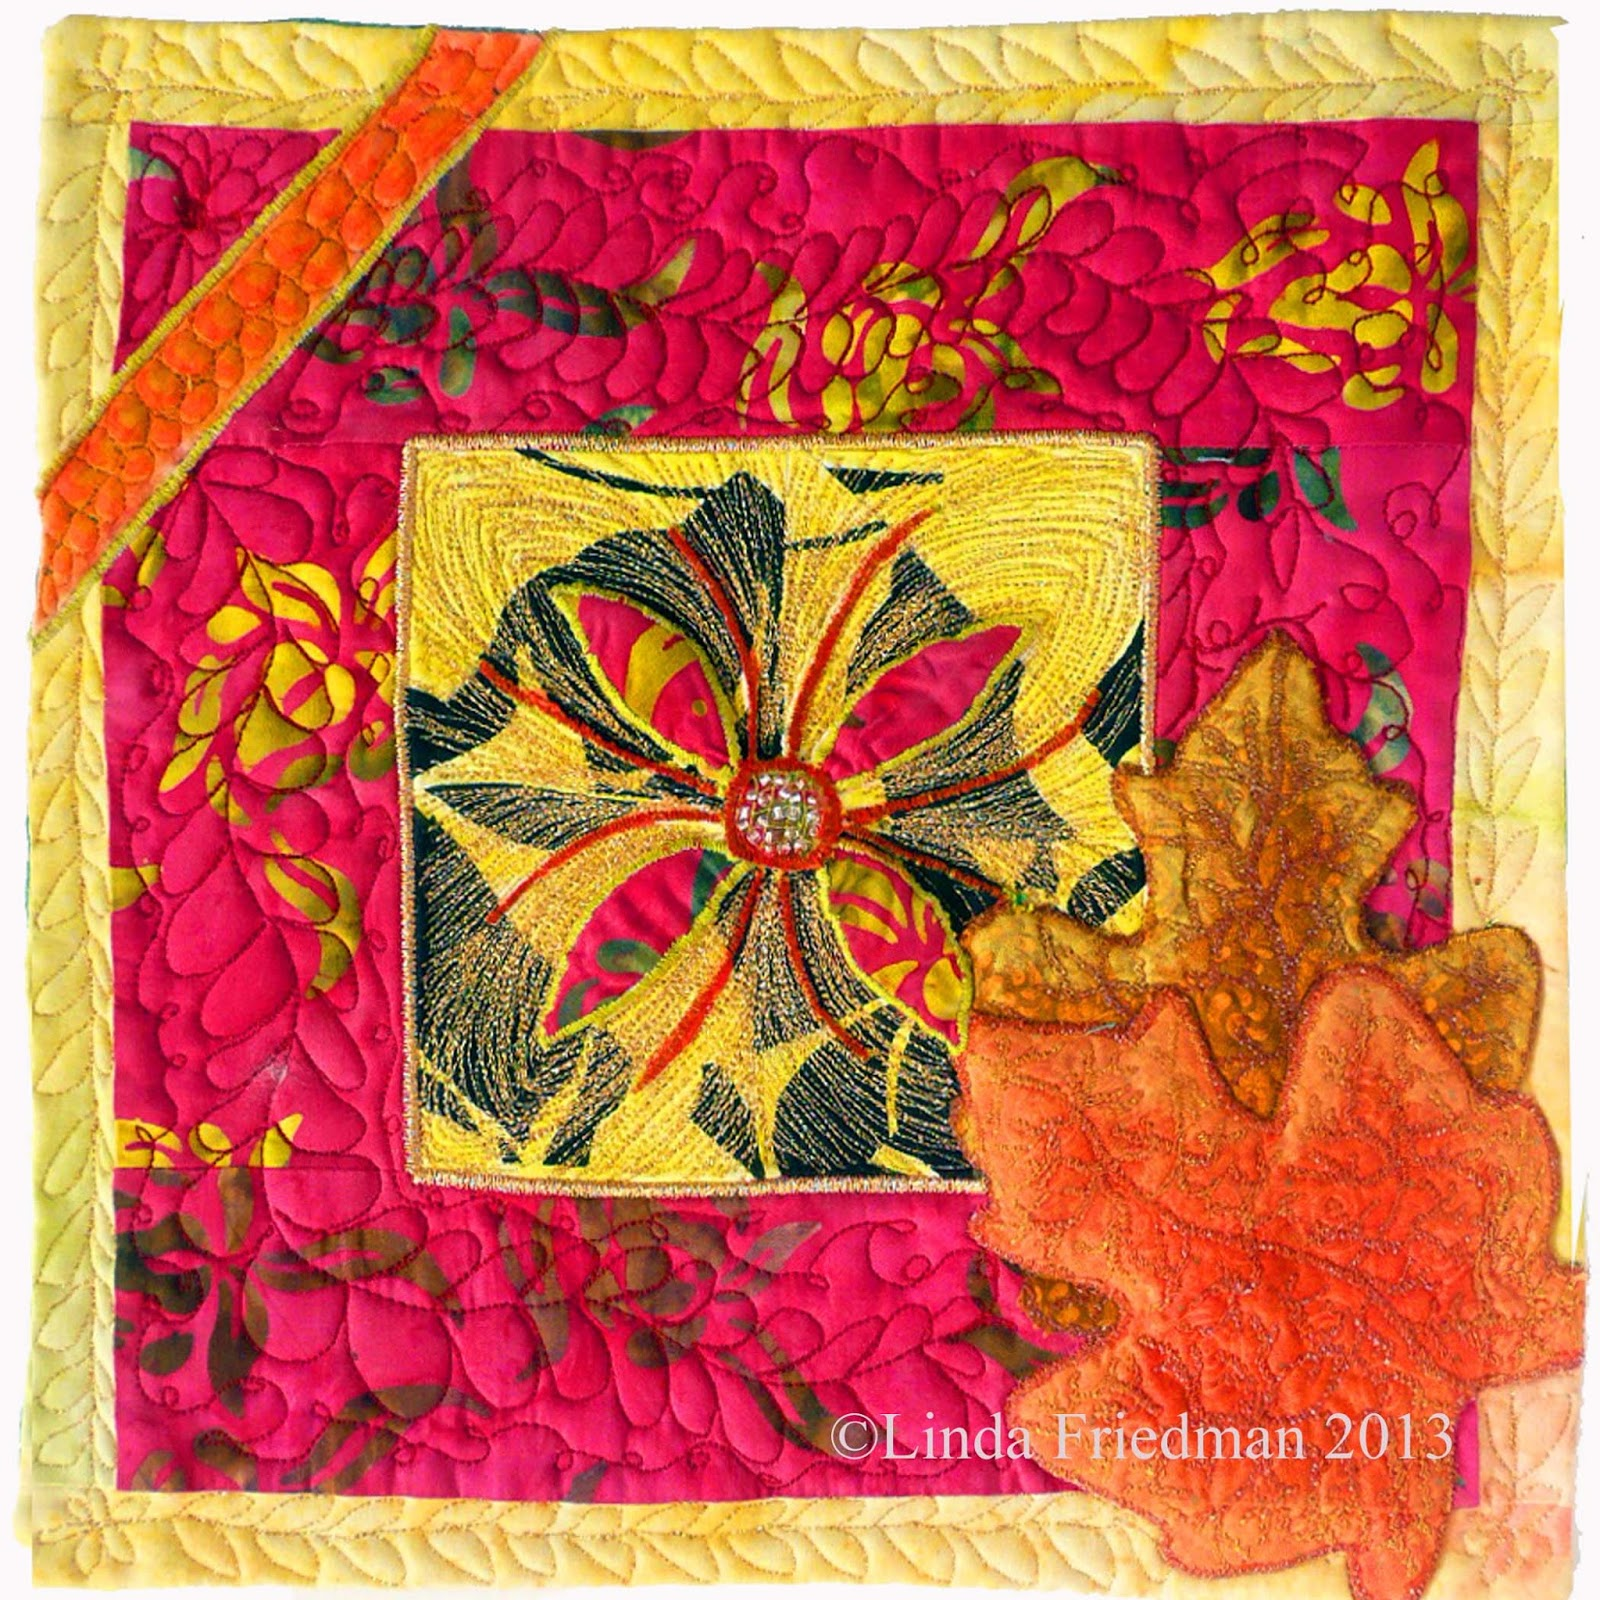 Linda S Art Quilts From Summer To Autumn